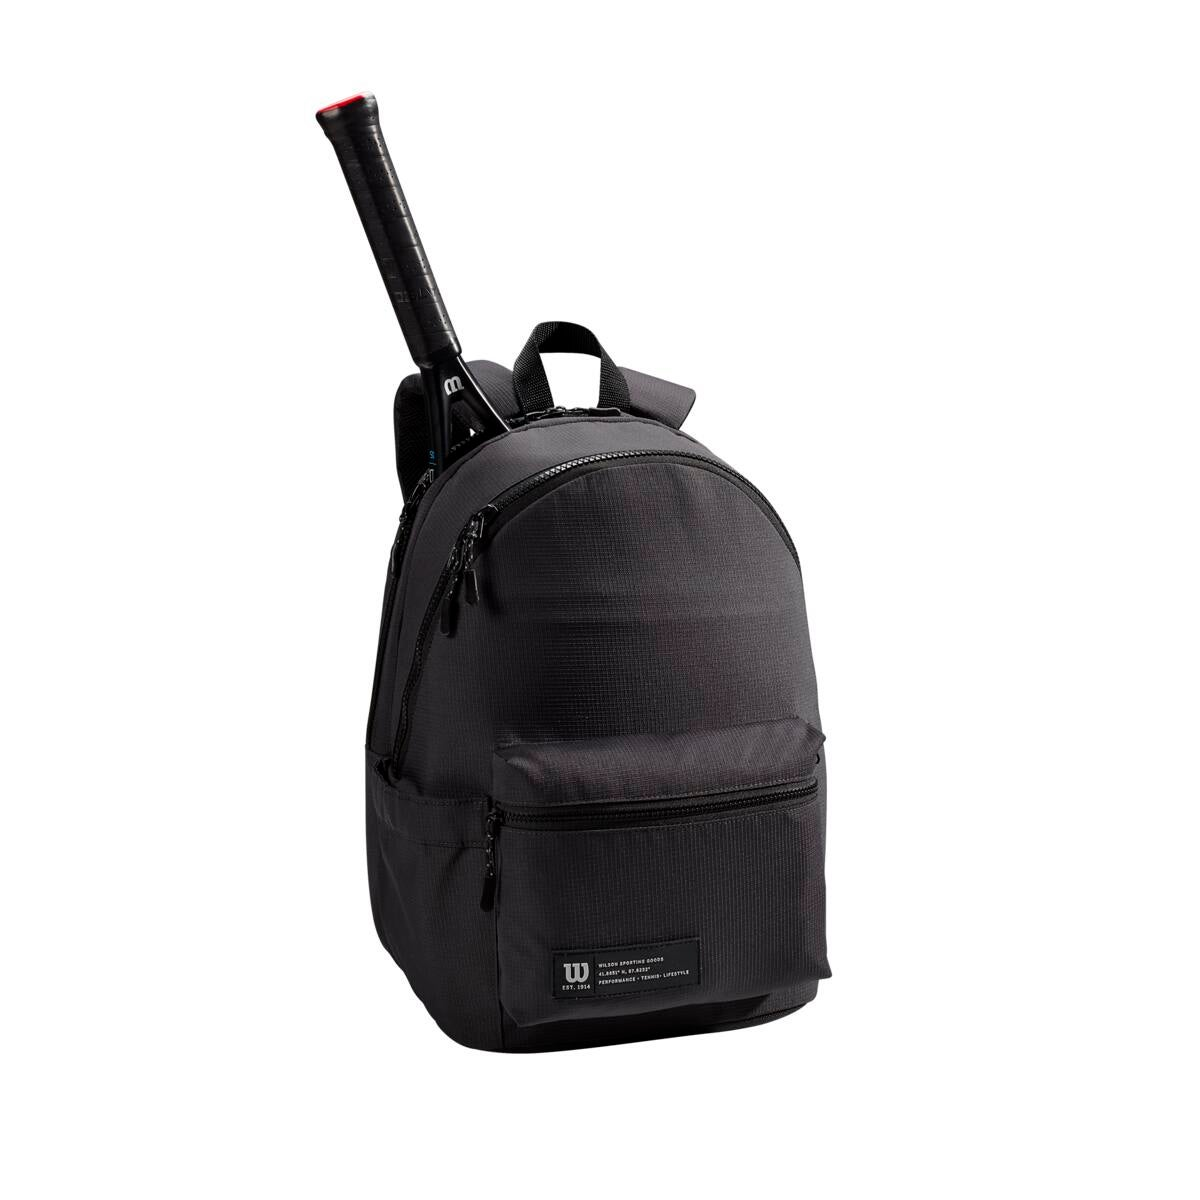 Holds up to 2 Rackets Wilson Work//Play Tennis Backpack Black WR8011901001